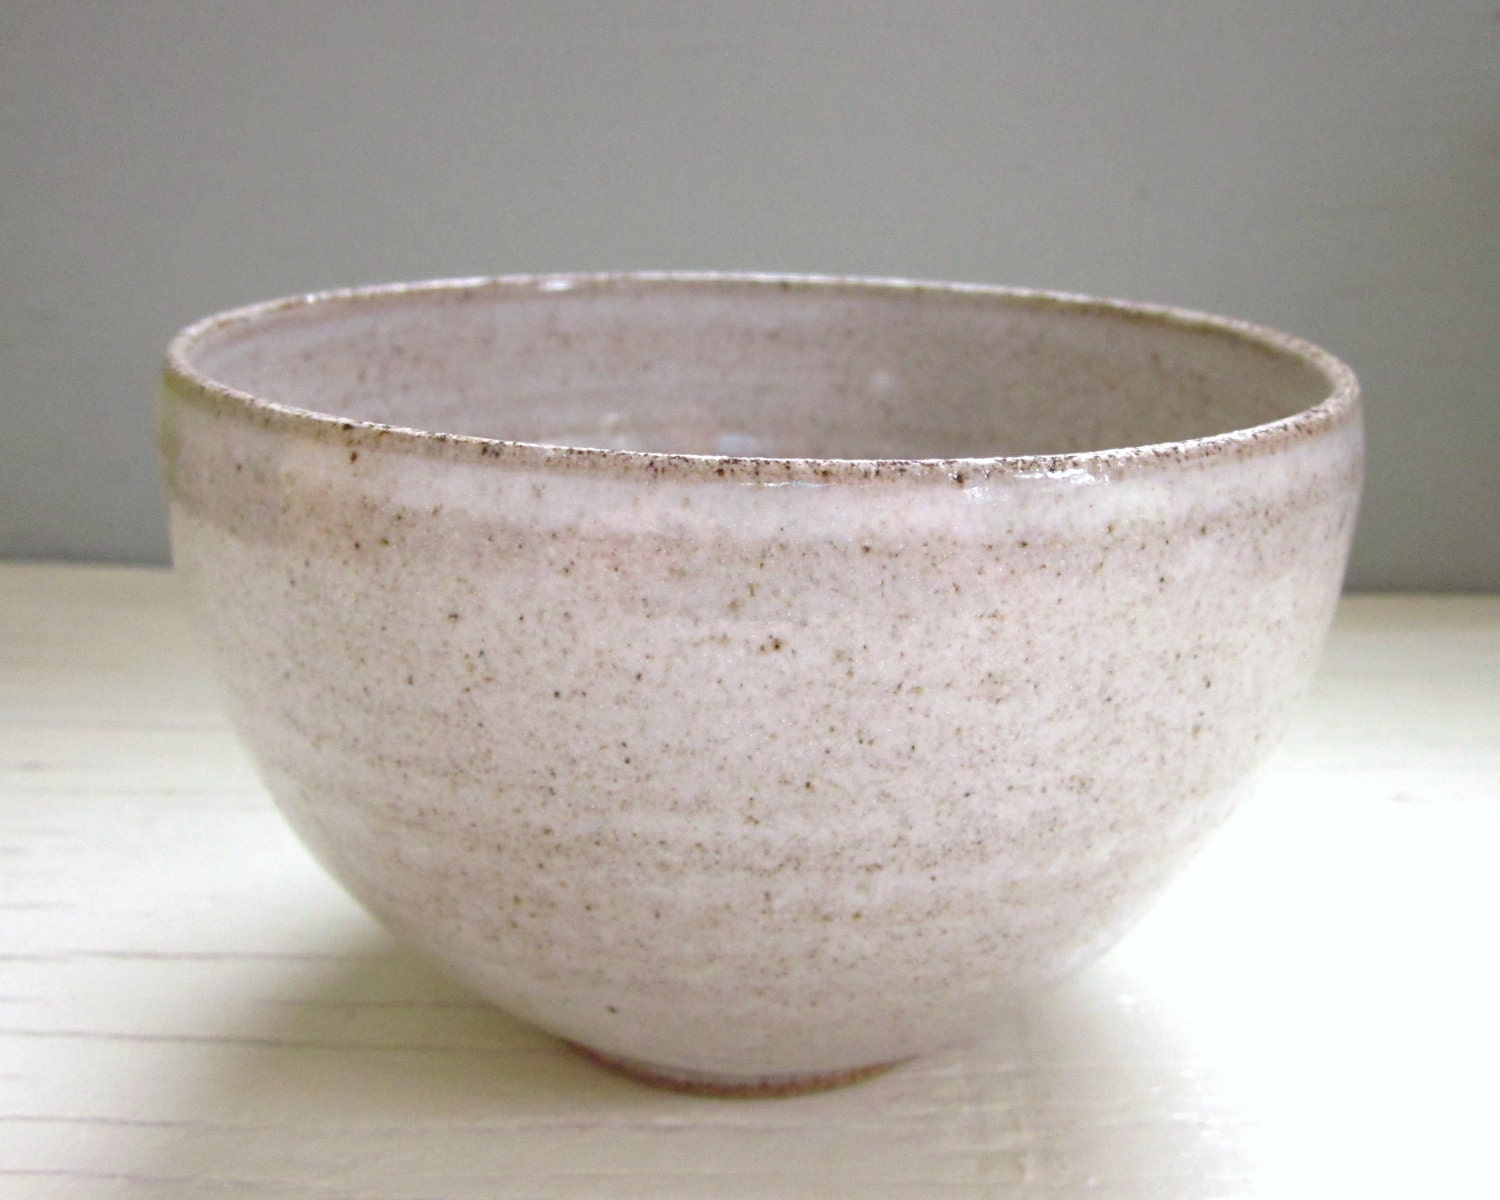 White Cereal Bowl Soup Bowl Ice Cream Bowl By Jdwolfepottery